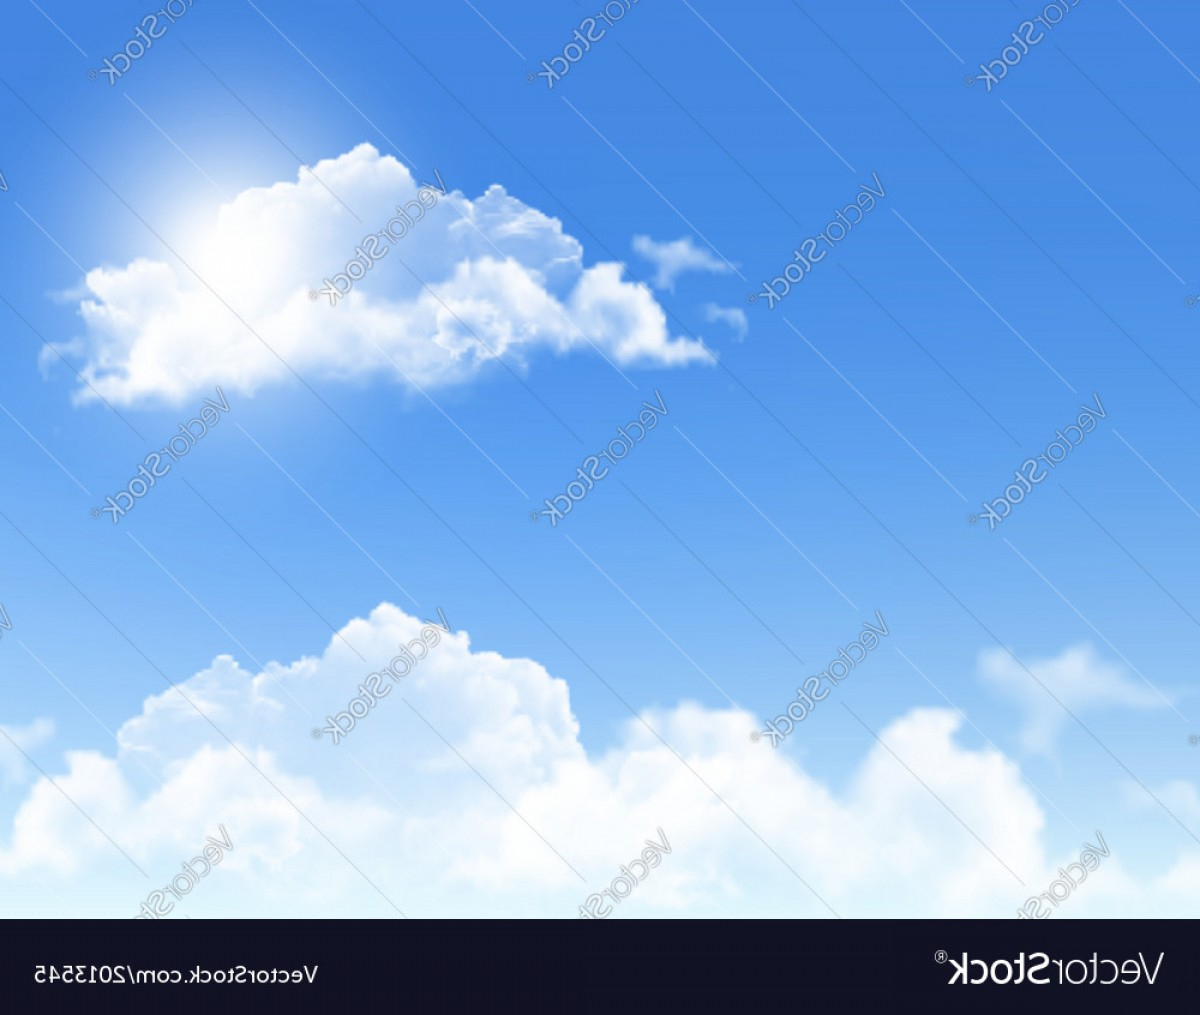 Clouds Backgrounds Vector: Background With Blue Sky And Clouds Backgrounds Vector